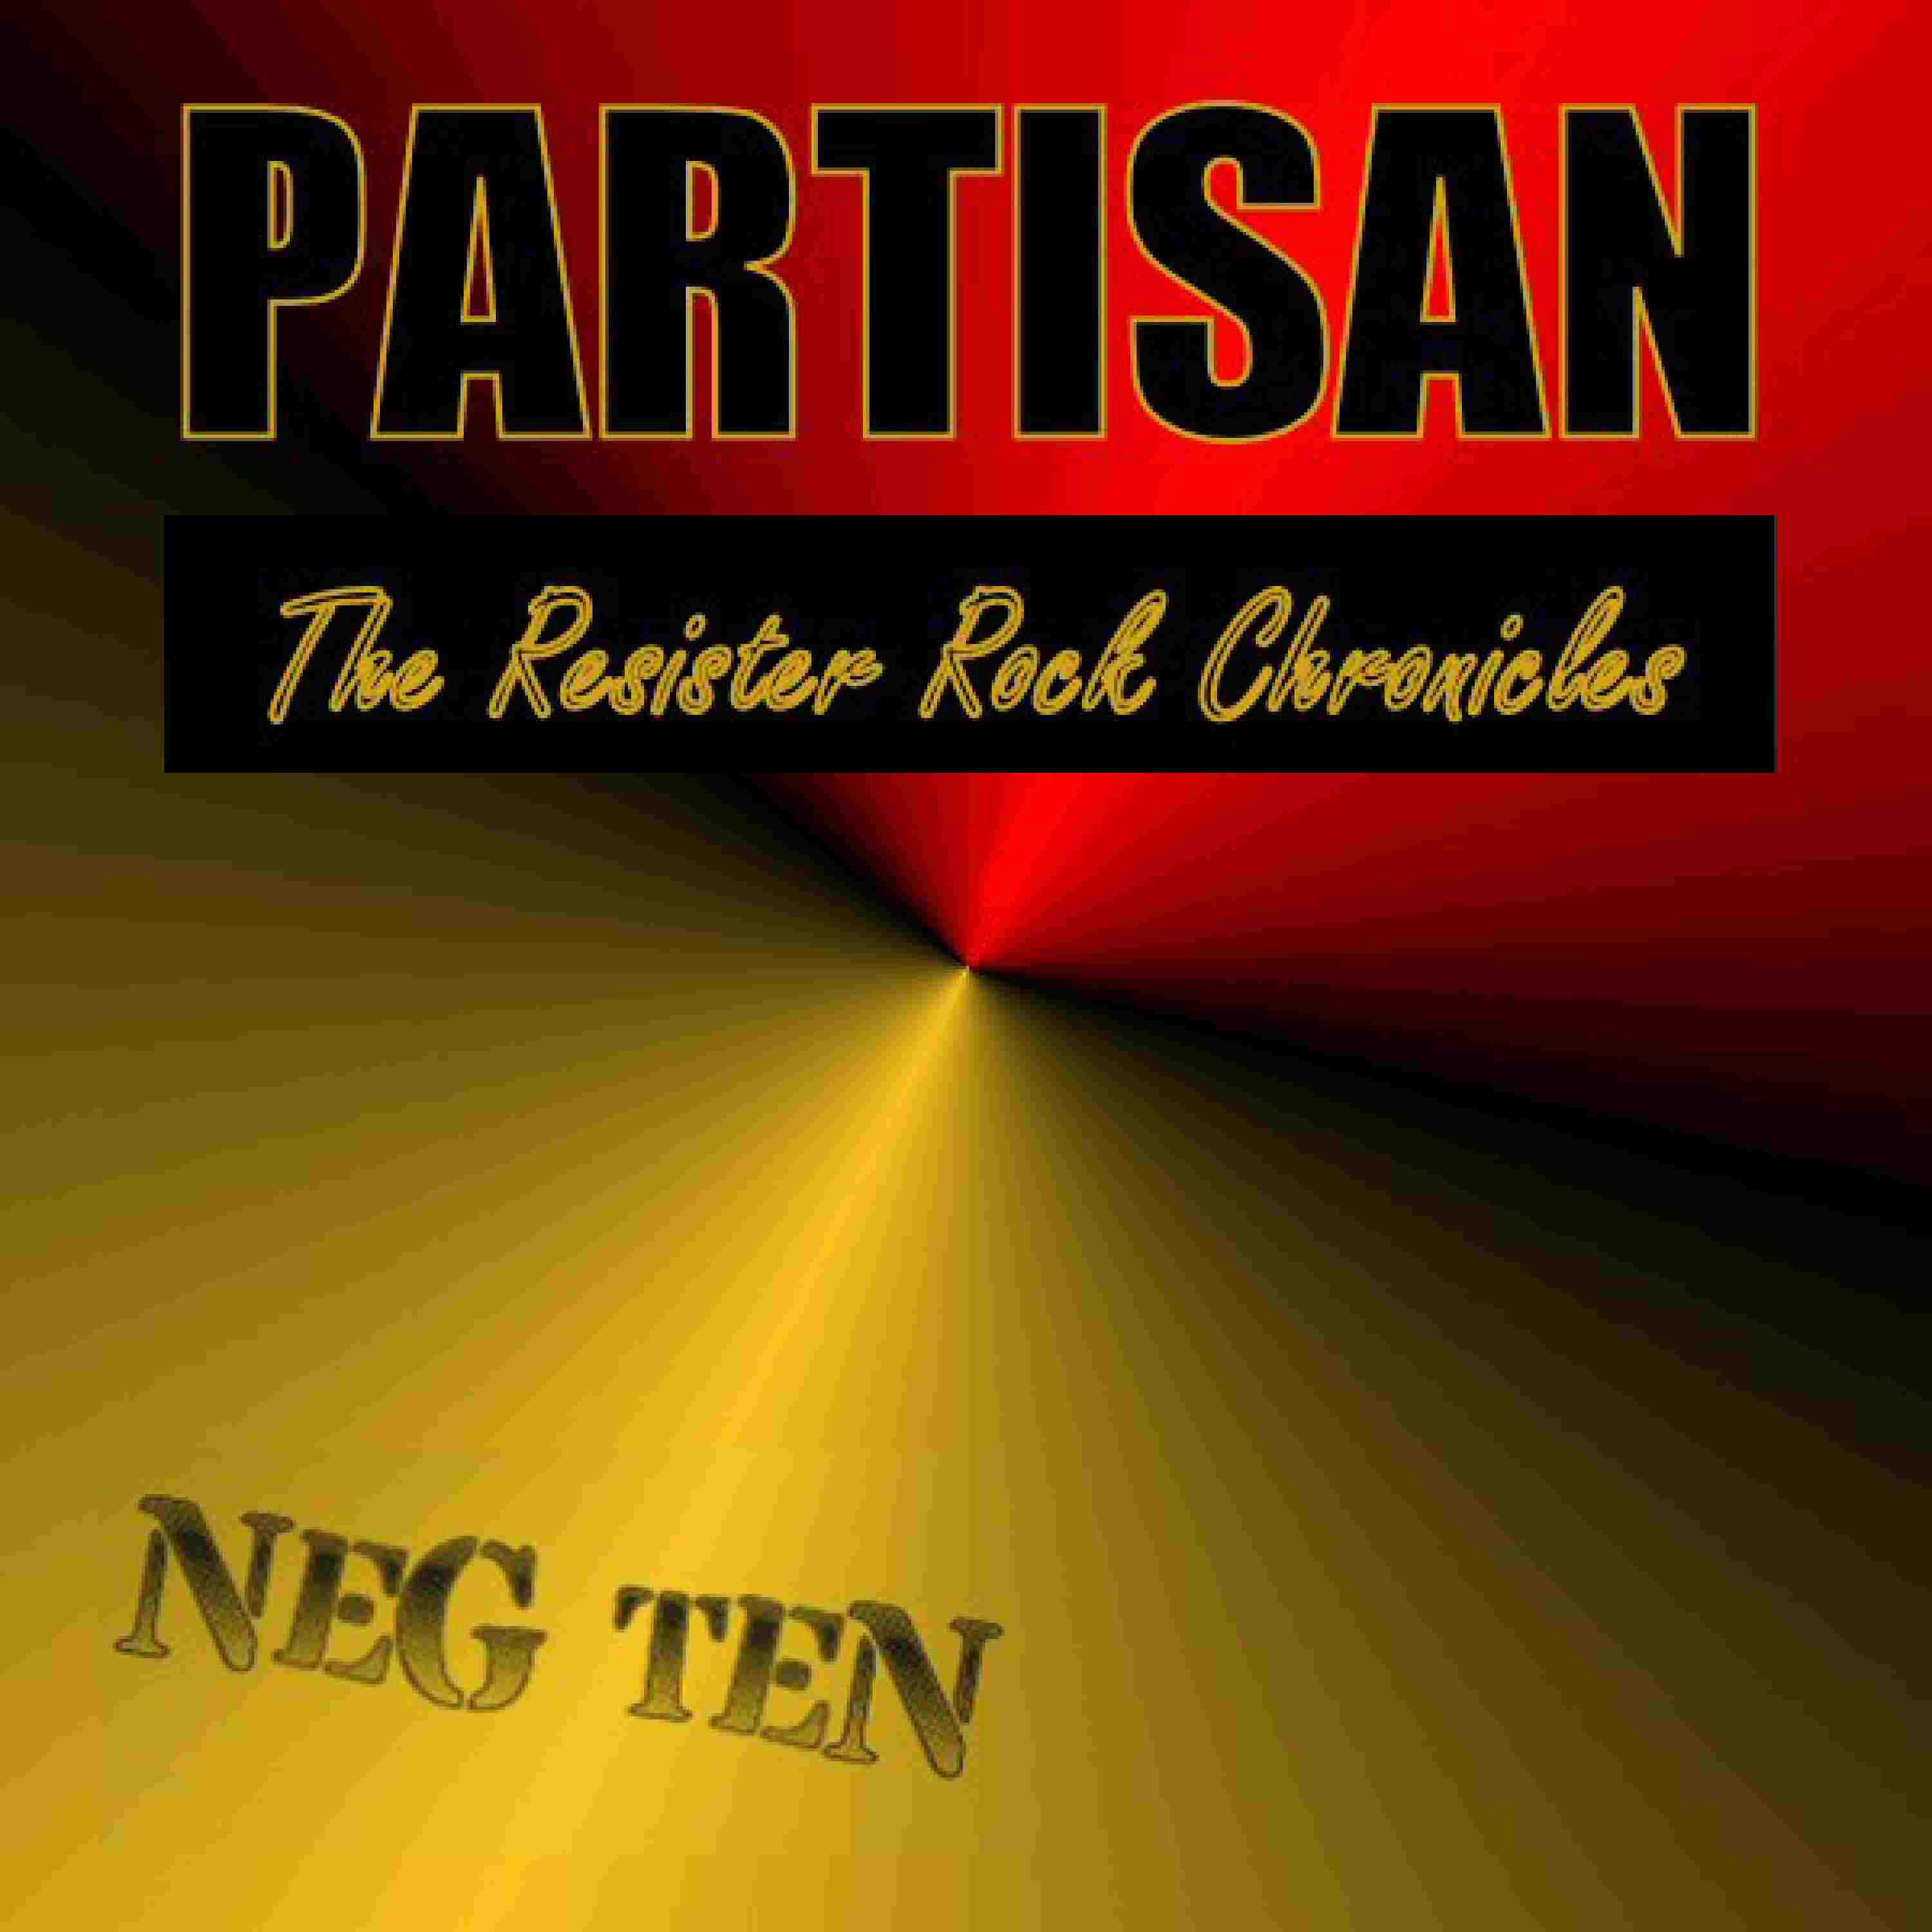 PARTISAN - The Resister Rock Chronicles